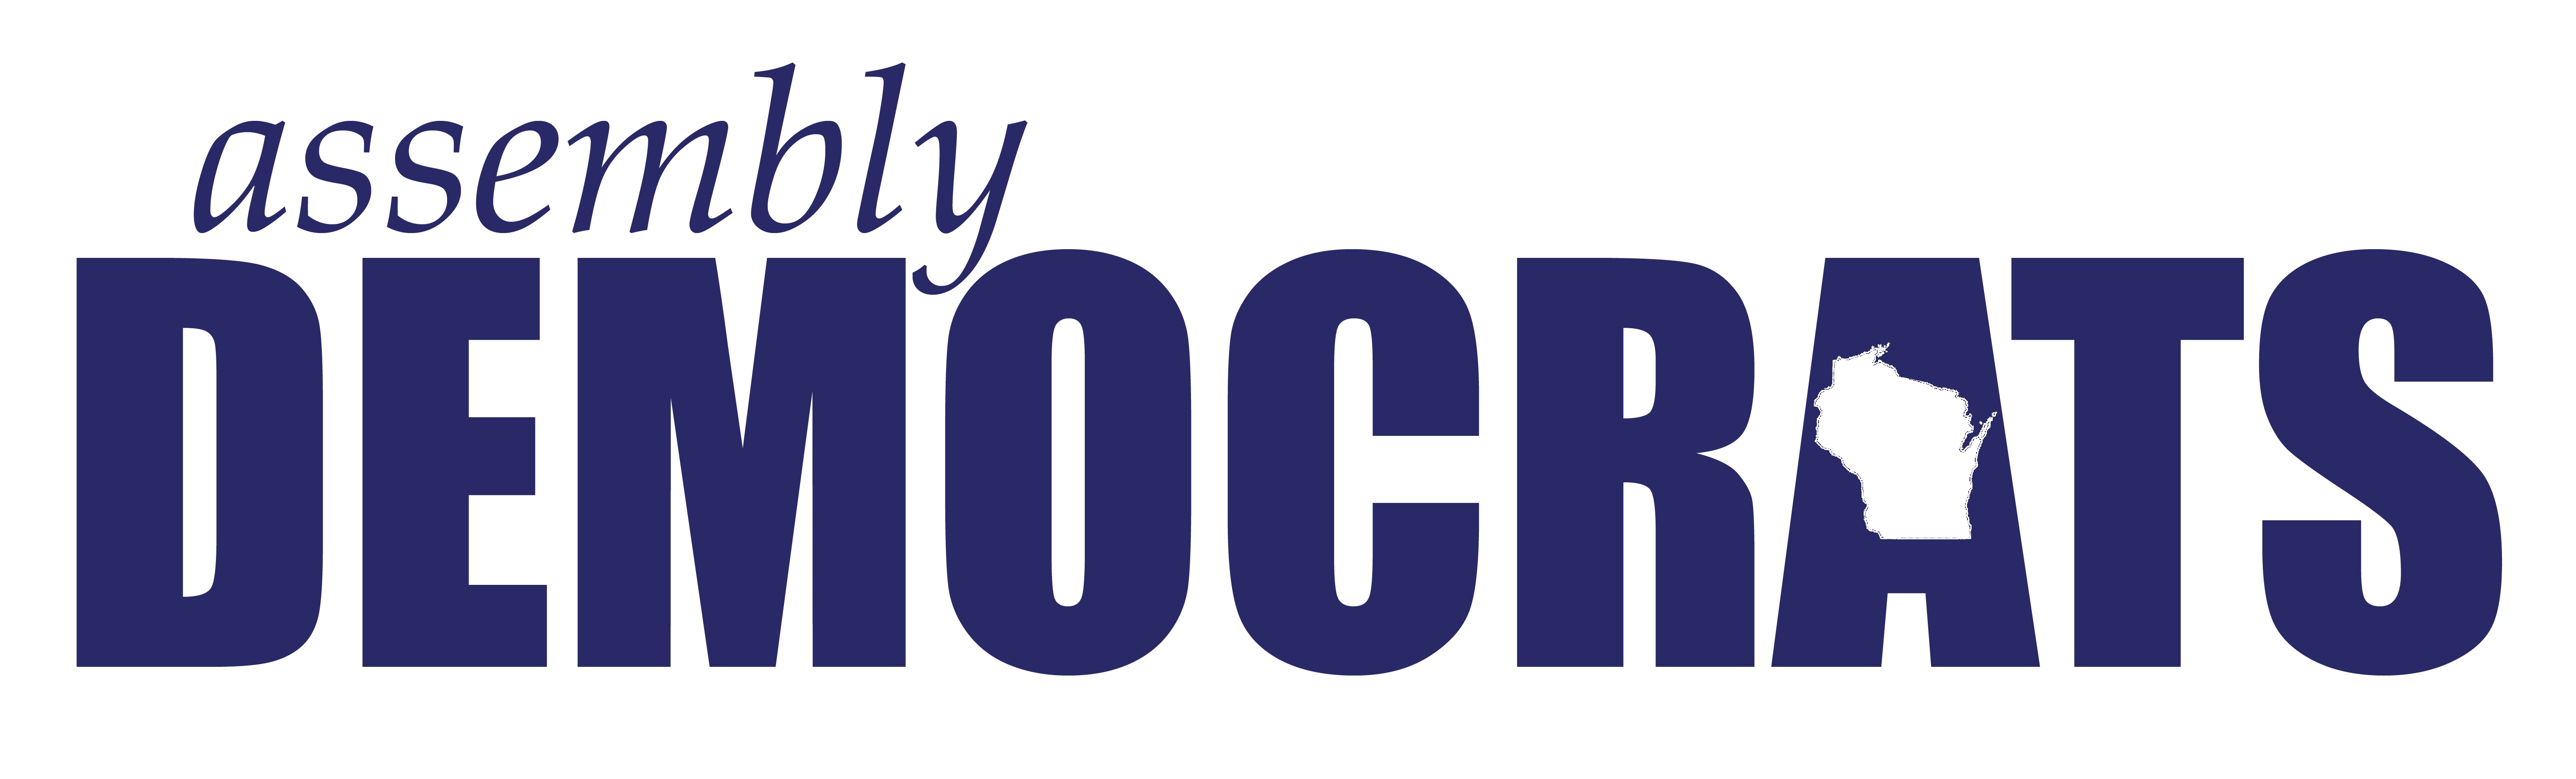 The Assembly Democratic Campaign Committee